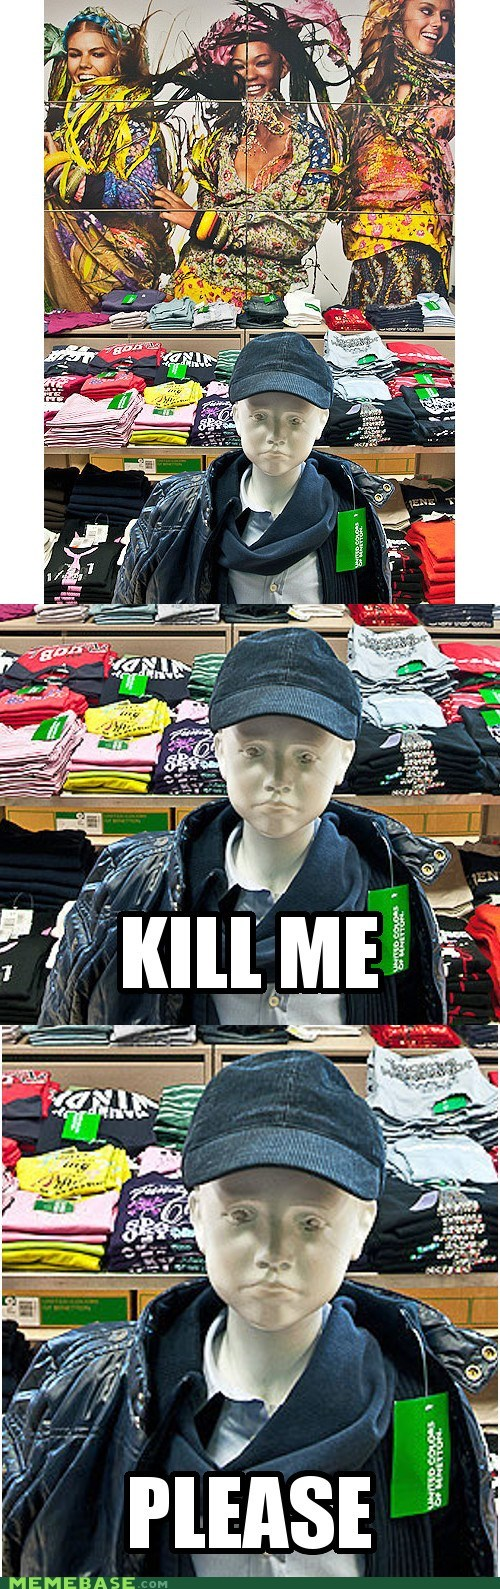 kill me now cloths store - 6812037888